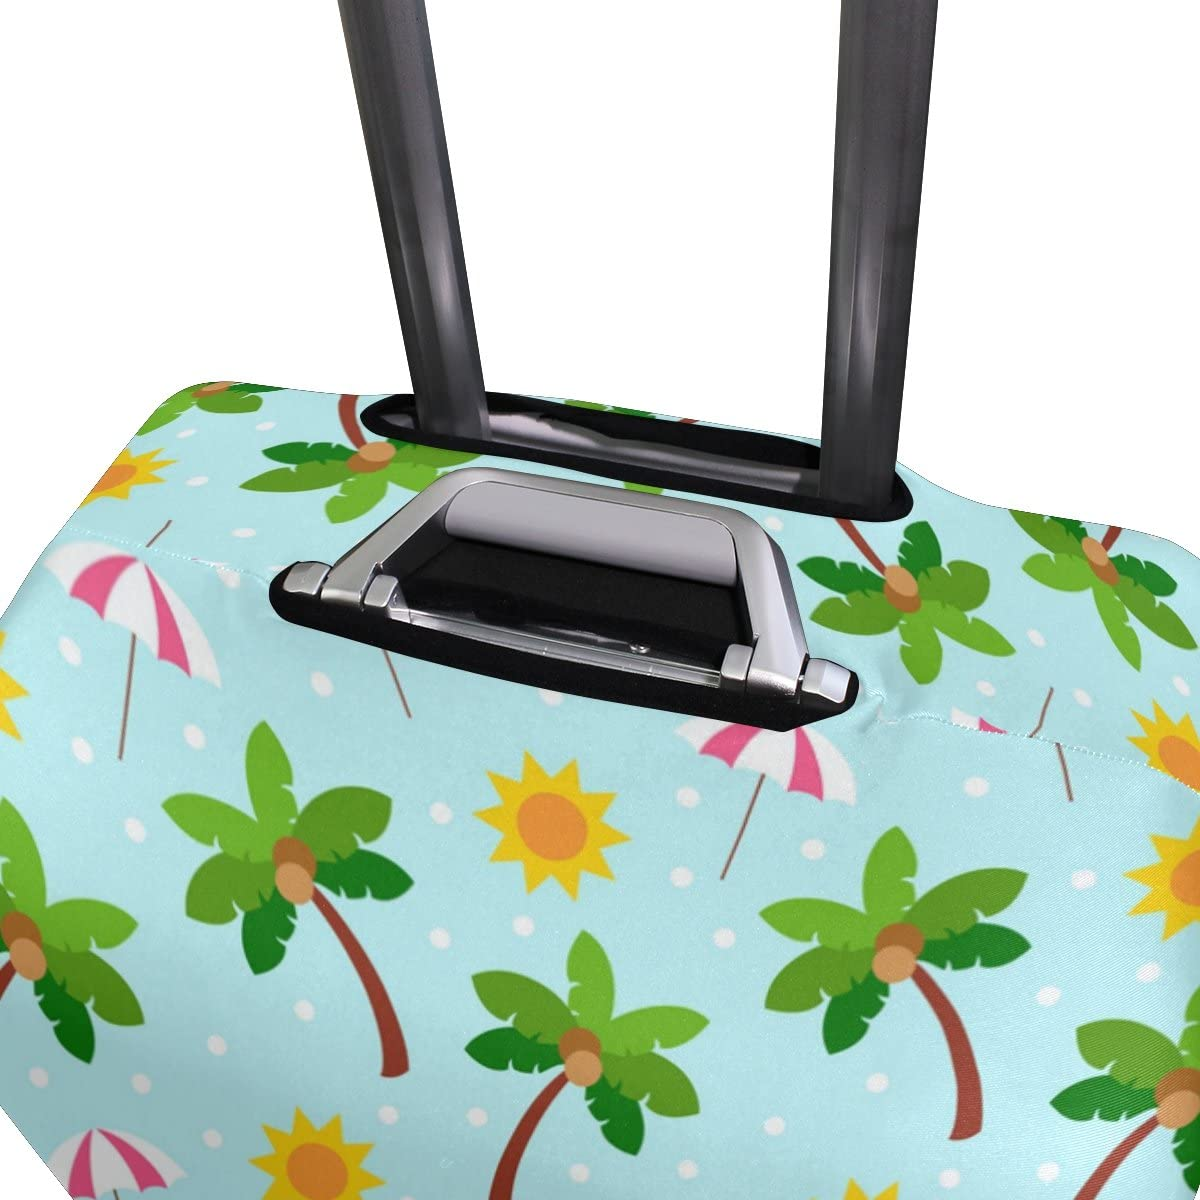 Elastic Travel Luggage Cover Sun Coconut Palm Parasol Suitcase Protector for 18-20 Inch Luggage